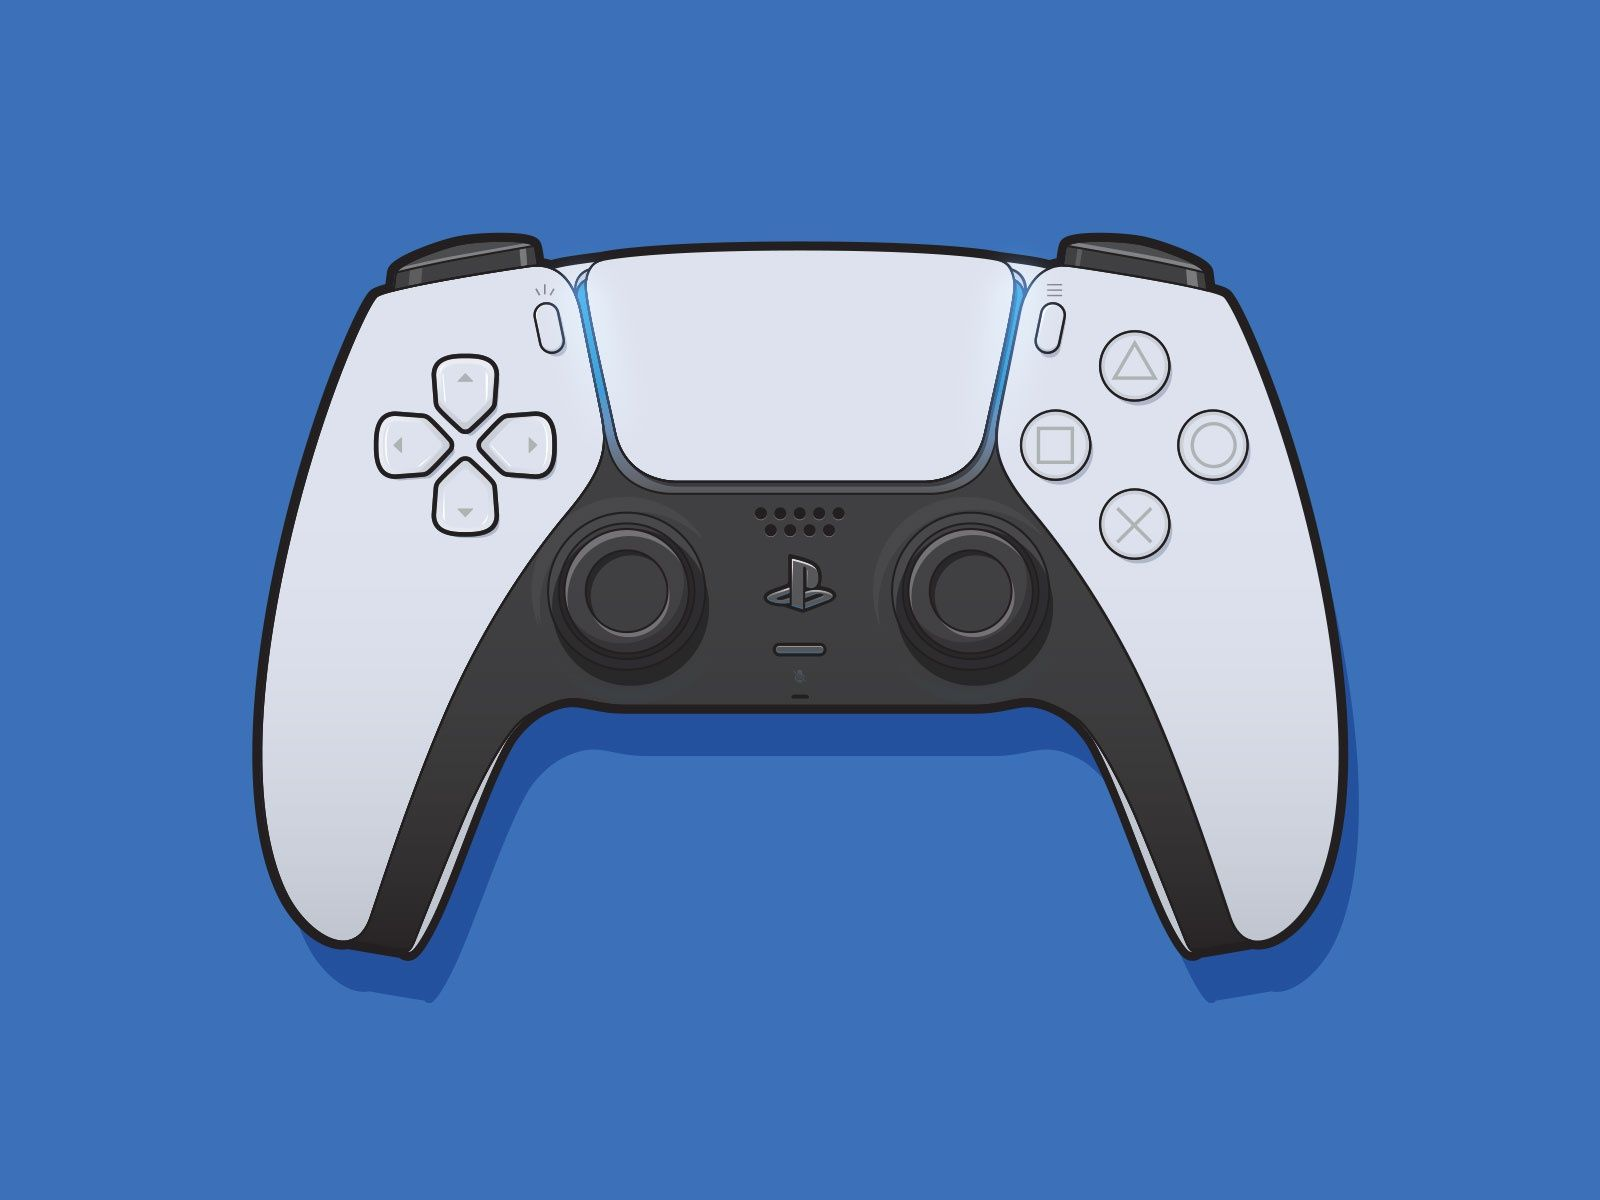 20++ 2 player ps5 games on same console ideas